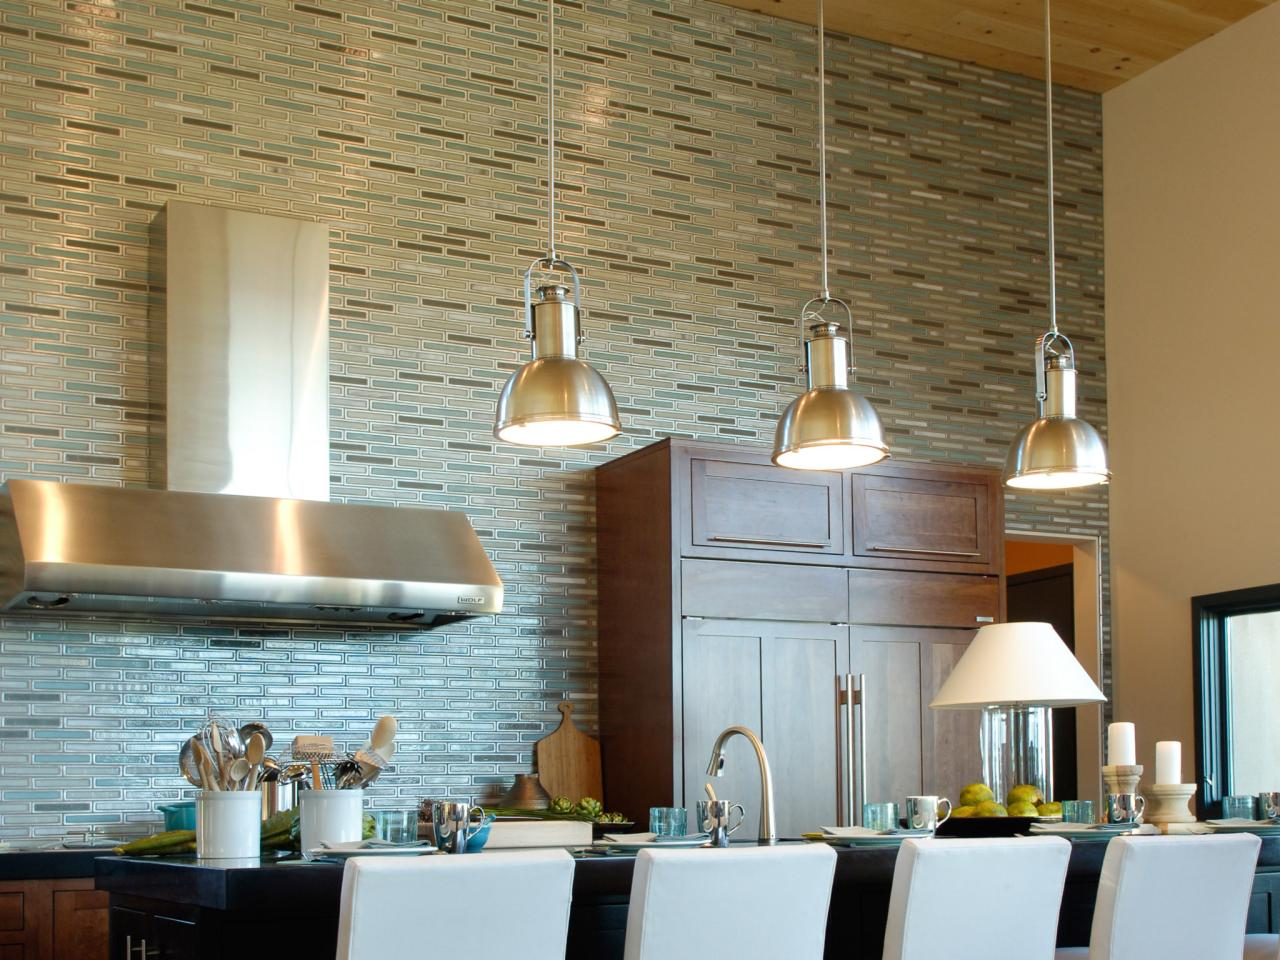 Tile backsplash ideas pictures tips from hgtv hgtv - Kitchen backsplash ideas ...